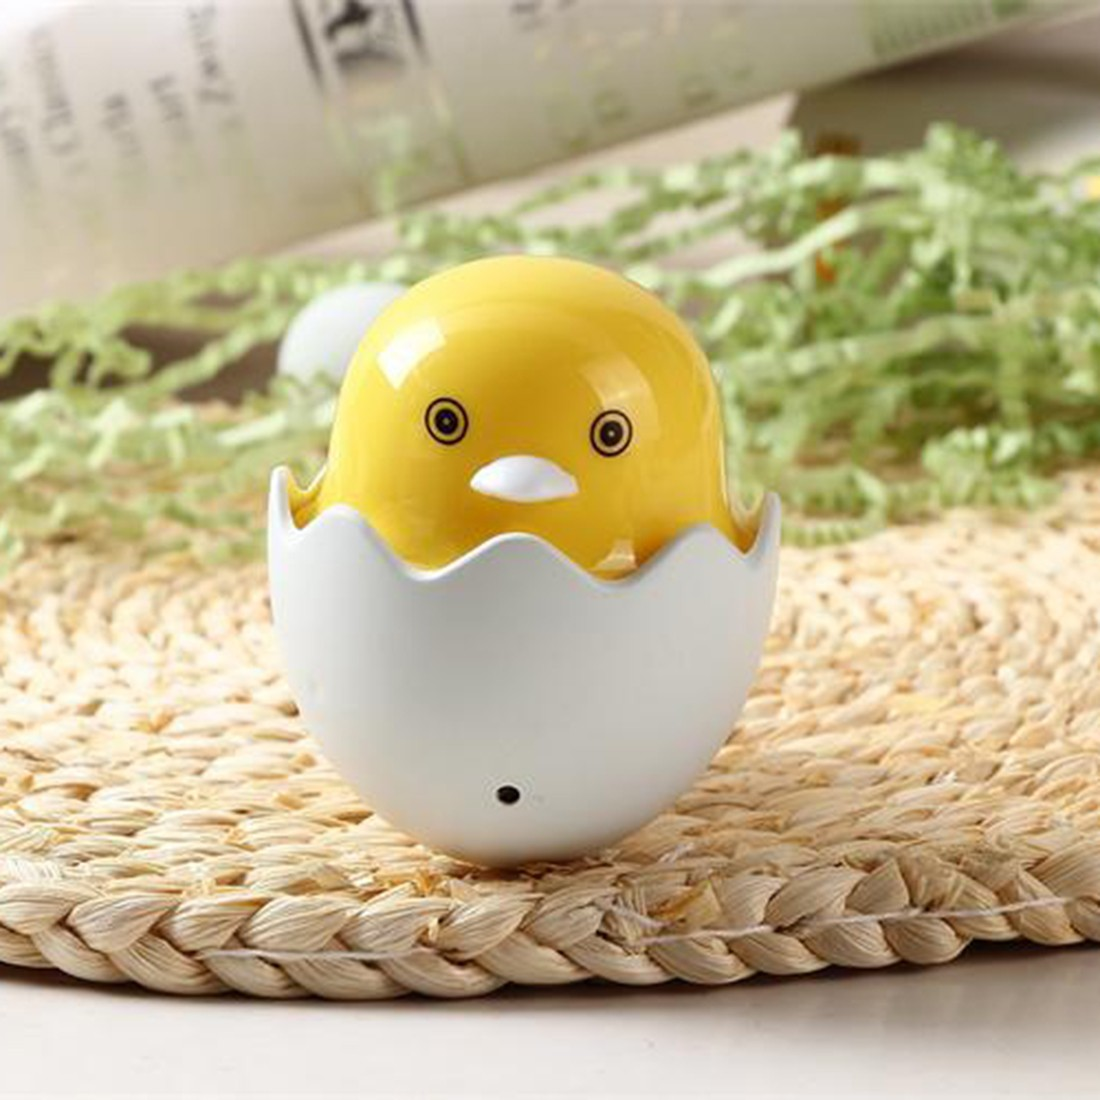 Hot 1pc EU Plug Wall Socket Lamps LED Luz de noche AC 220V Light Control Sensor Yellow Duck Bedroom Lamp Gift for Children Cute